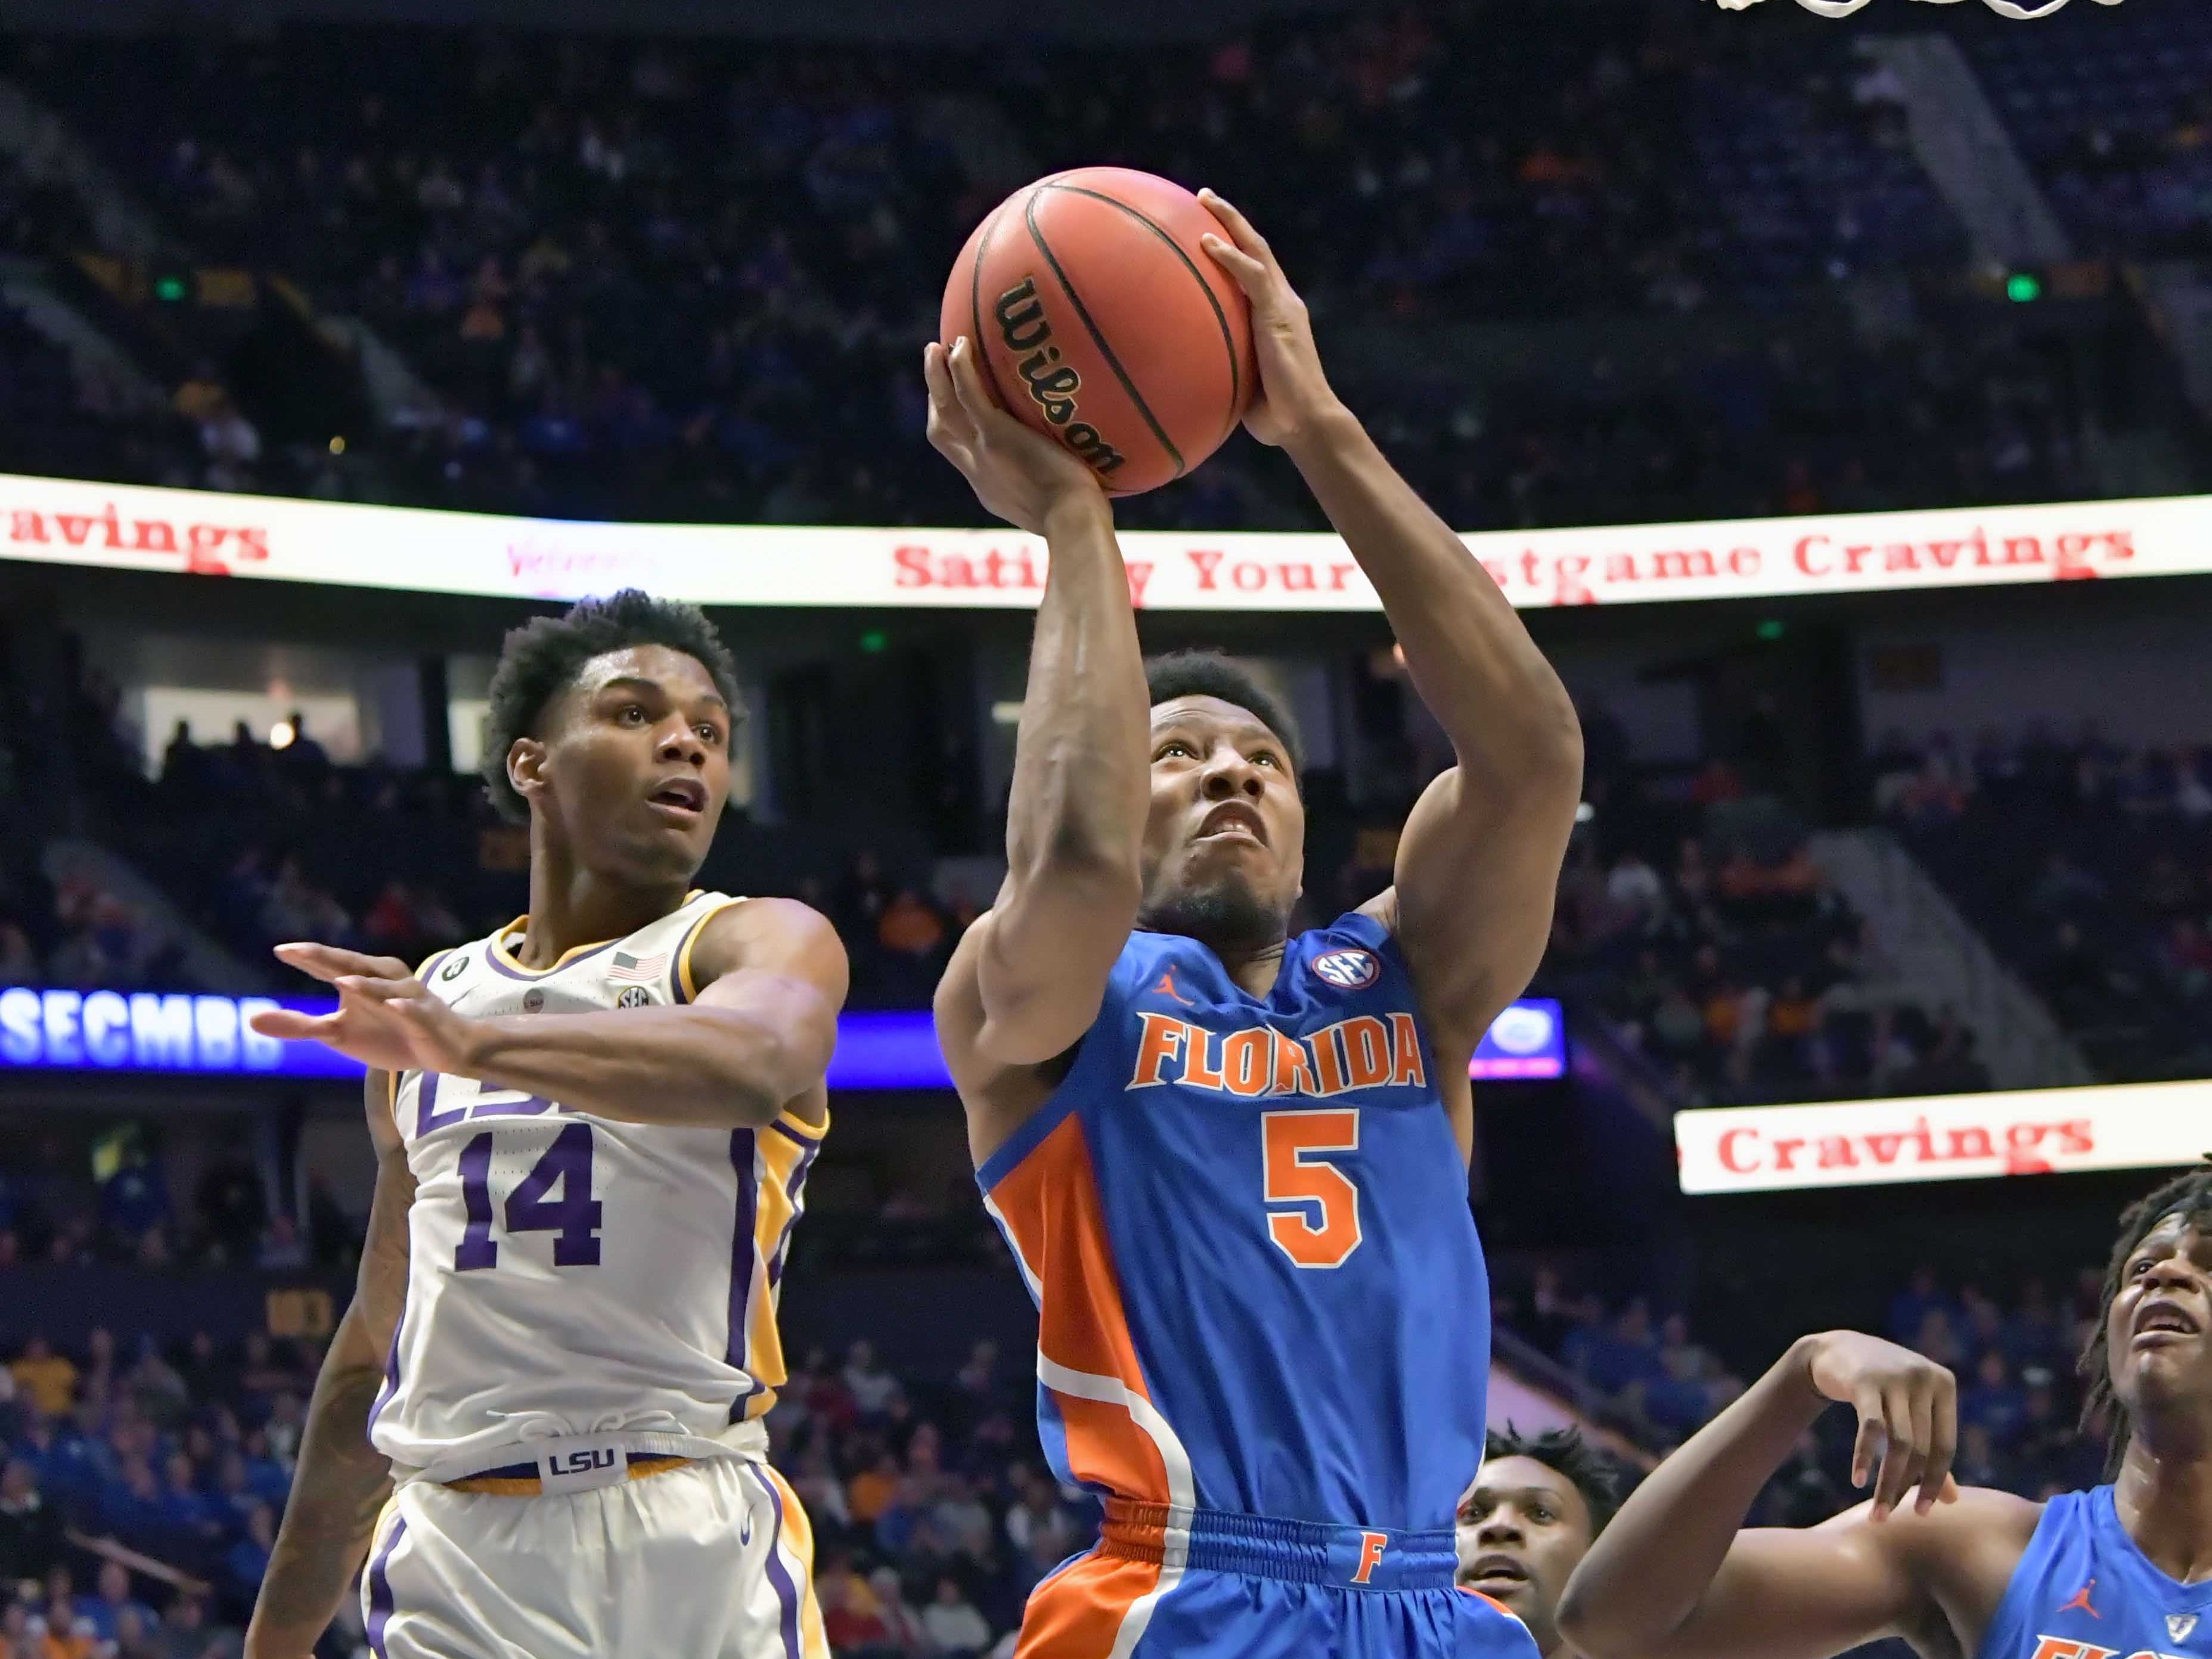 Mar 15, 2019; Nashville, TN, USA; Florida Gators guard KeVaughn Allen (5) shoots against LSU Tigers guard Marlon Taylor (14) during the first half of game seven in the SEC conference tournament at Bridgestone Arena. Mandatory Credit: Jim Brown-USA TODAY Sports